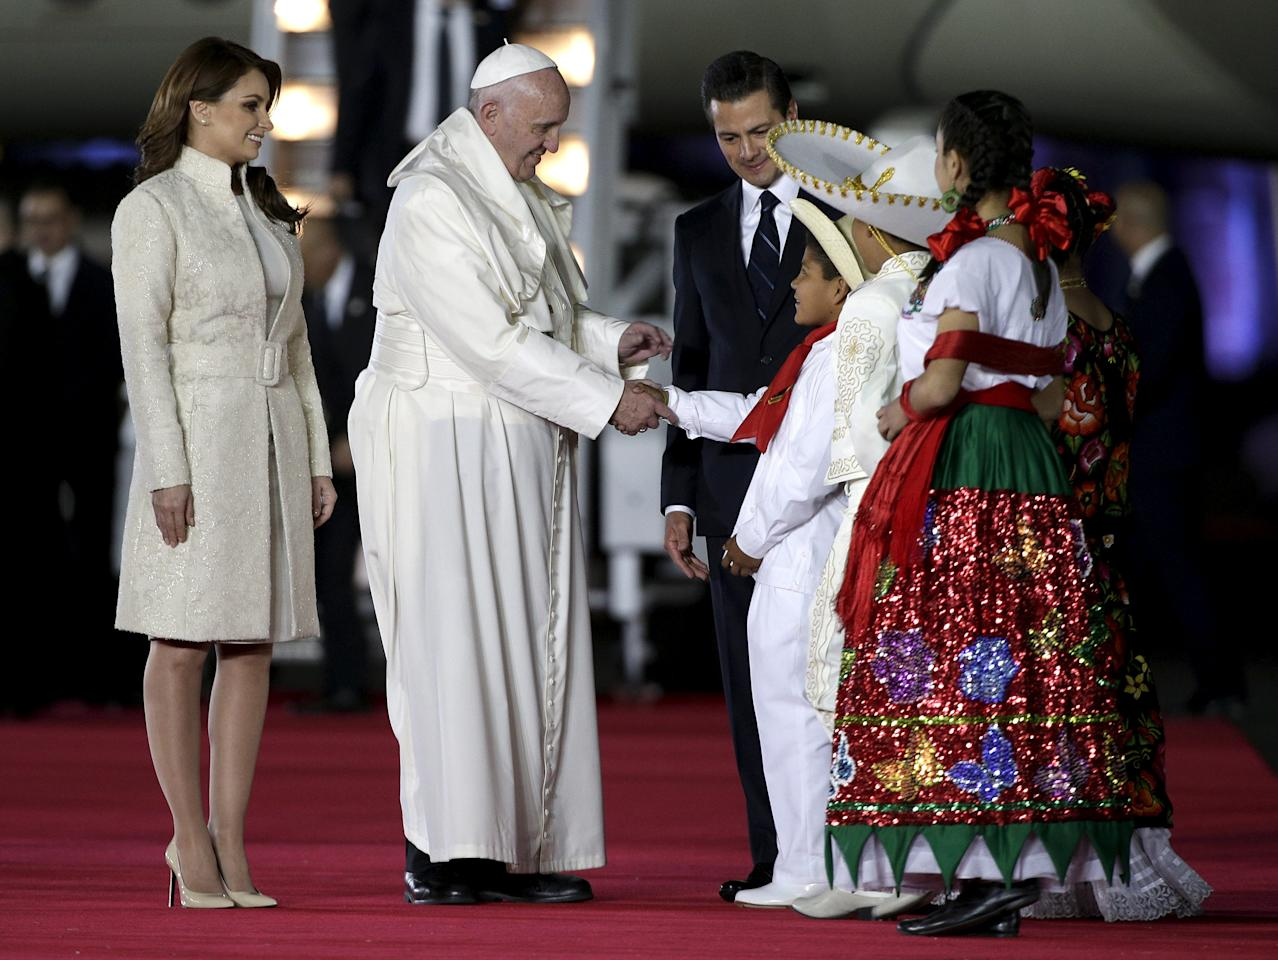 Pope Francis greets children next to Mexico's President Enrique Pena Nieto and Mexico's first lady Angelica Rivera after his arrival in Mexico City